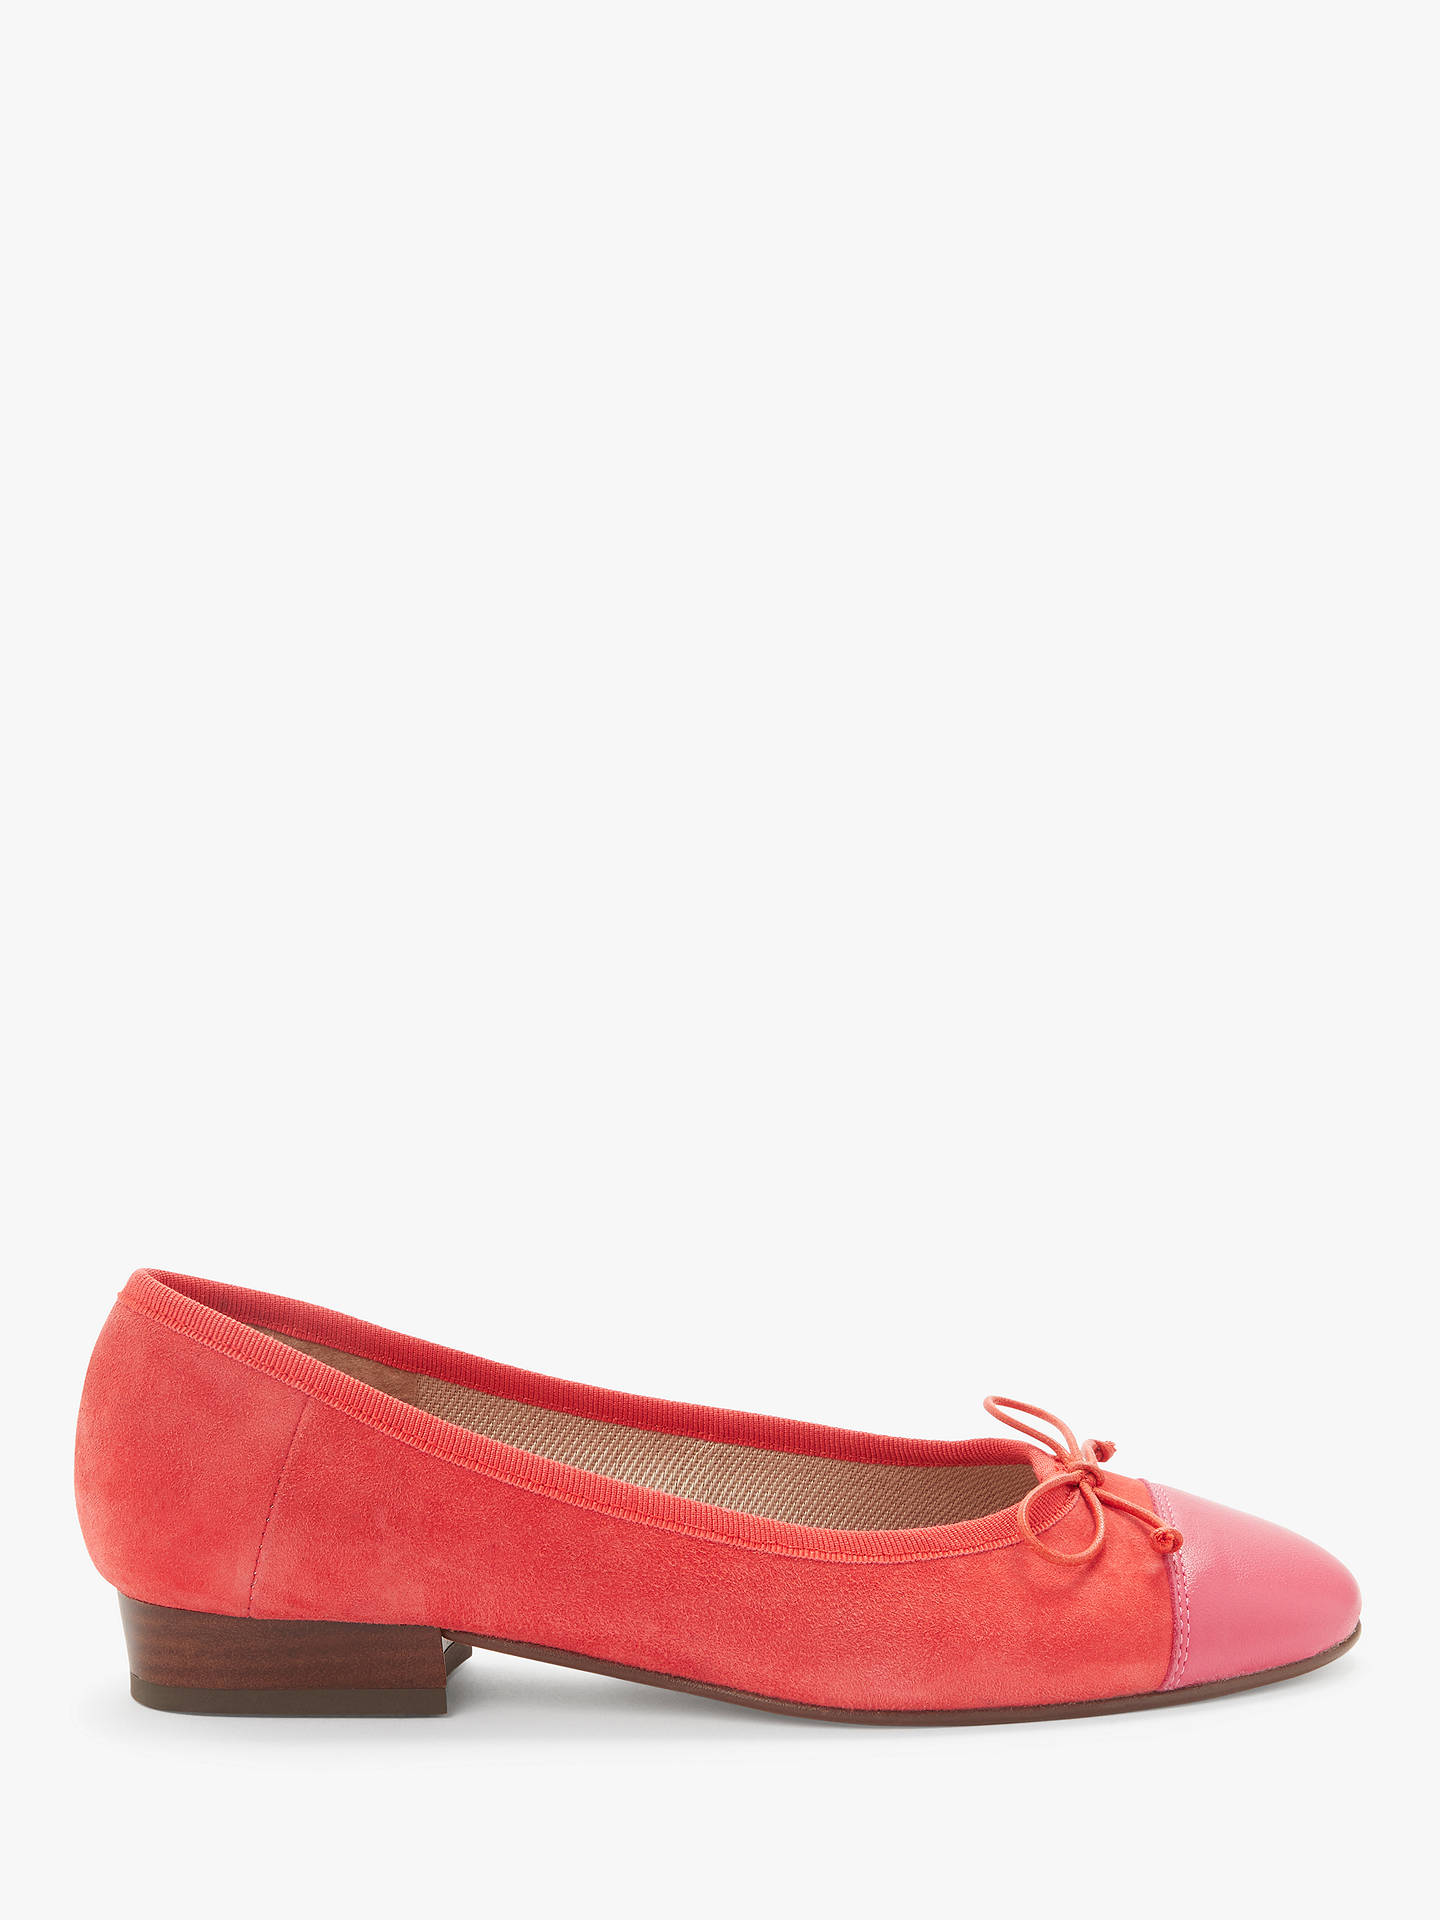 best service e0a96 780ed John Lewis & Partners Halle Ballerina Pumps, Red Suede